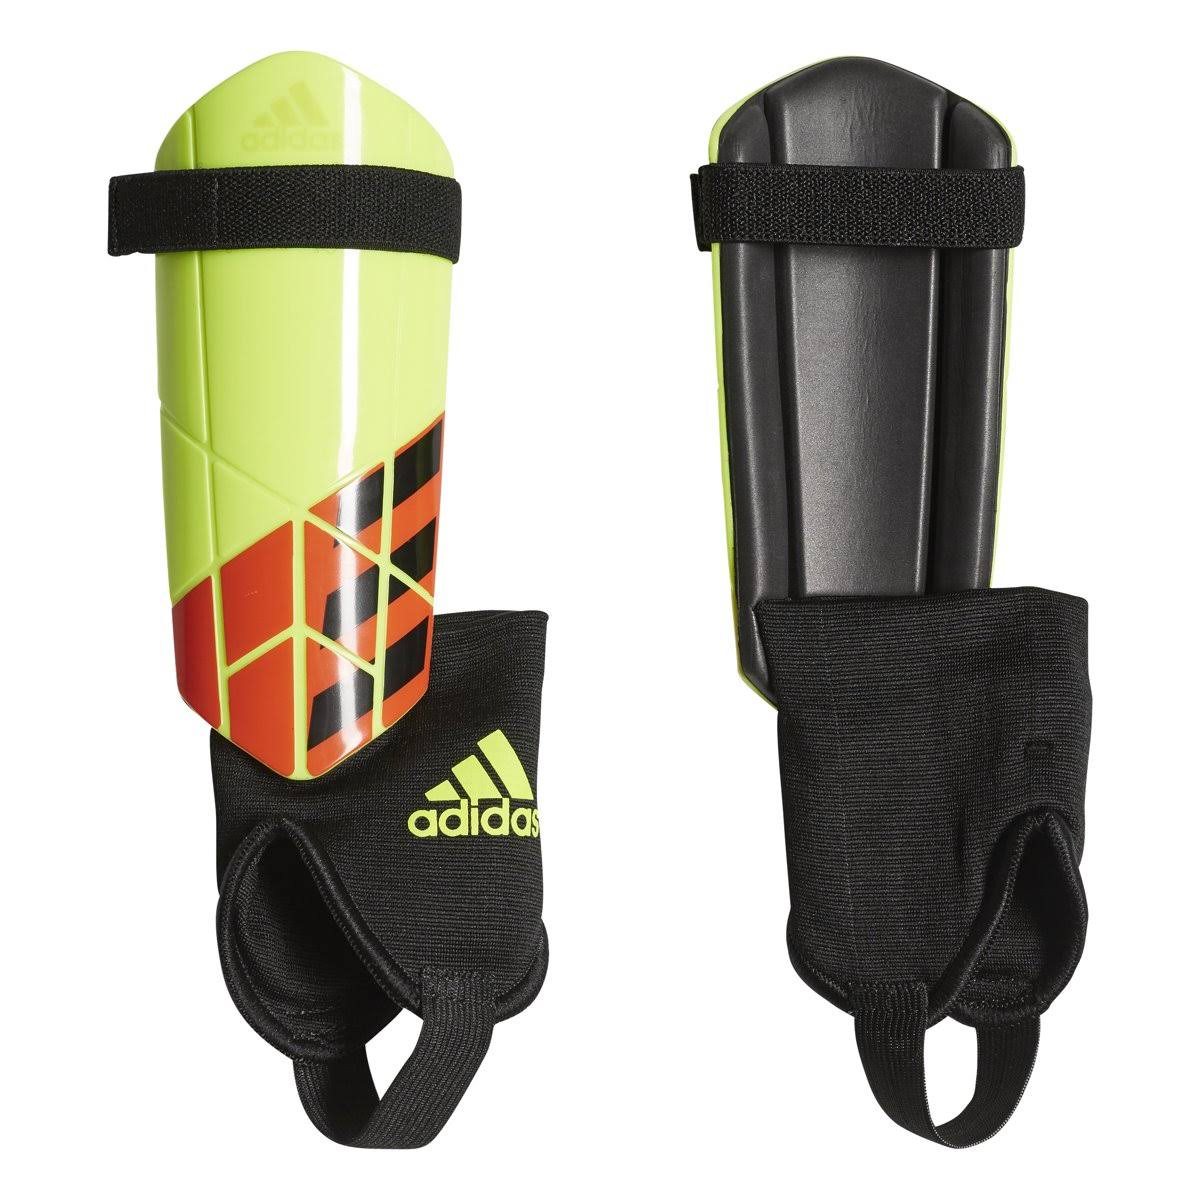 Adidas Youth x Shin Guards Yellow / Medium